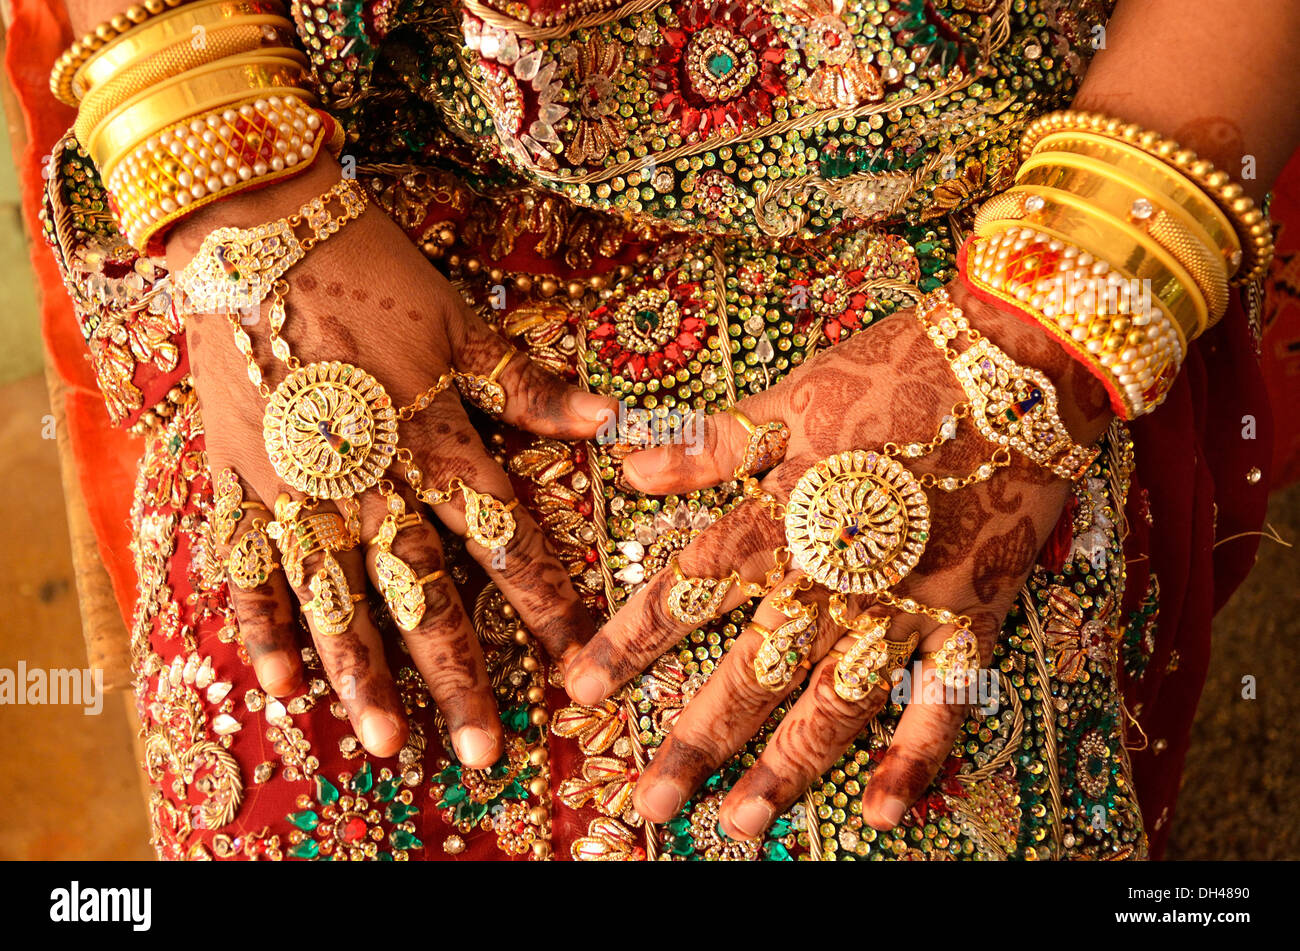 shi 180178 - Woman wearing traditional gold Jewellery in hands ...